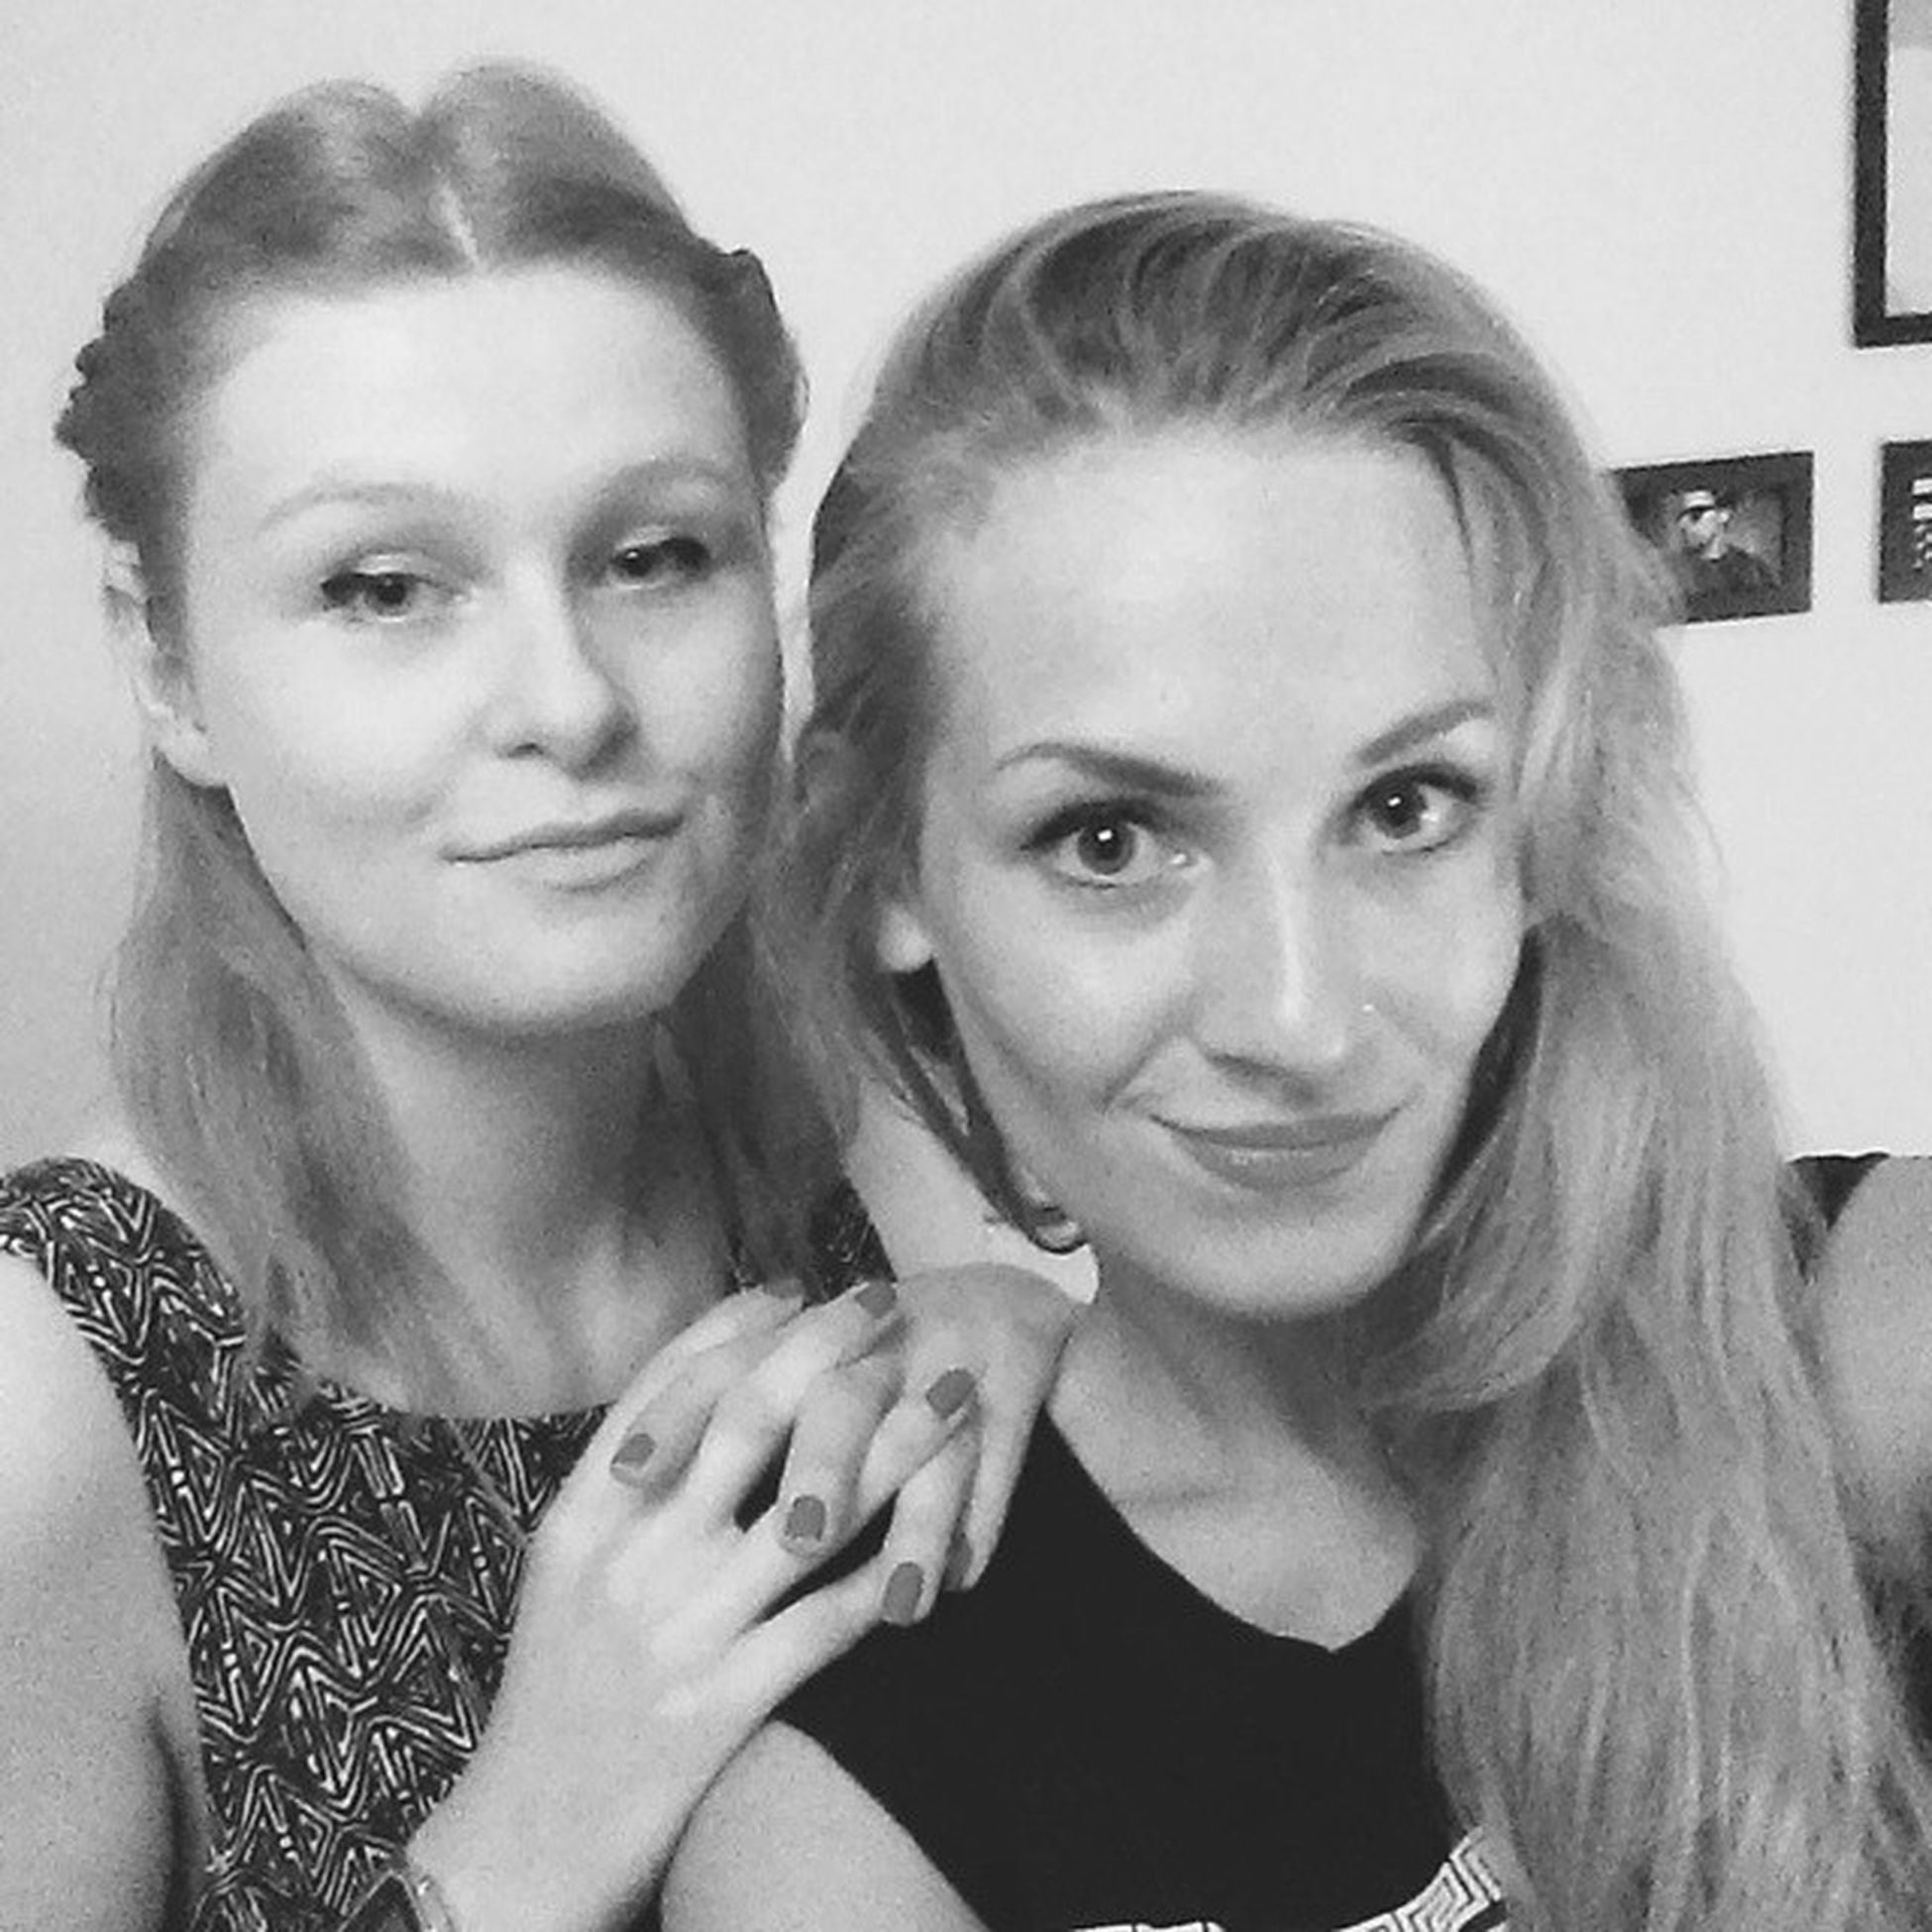 Liebe @theresatingtong. Best friends Party Samstag Saturday Hauptsachesamstag Bw fashion Musik music hipster hiphop hair mode Resi